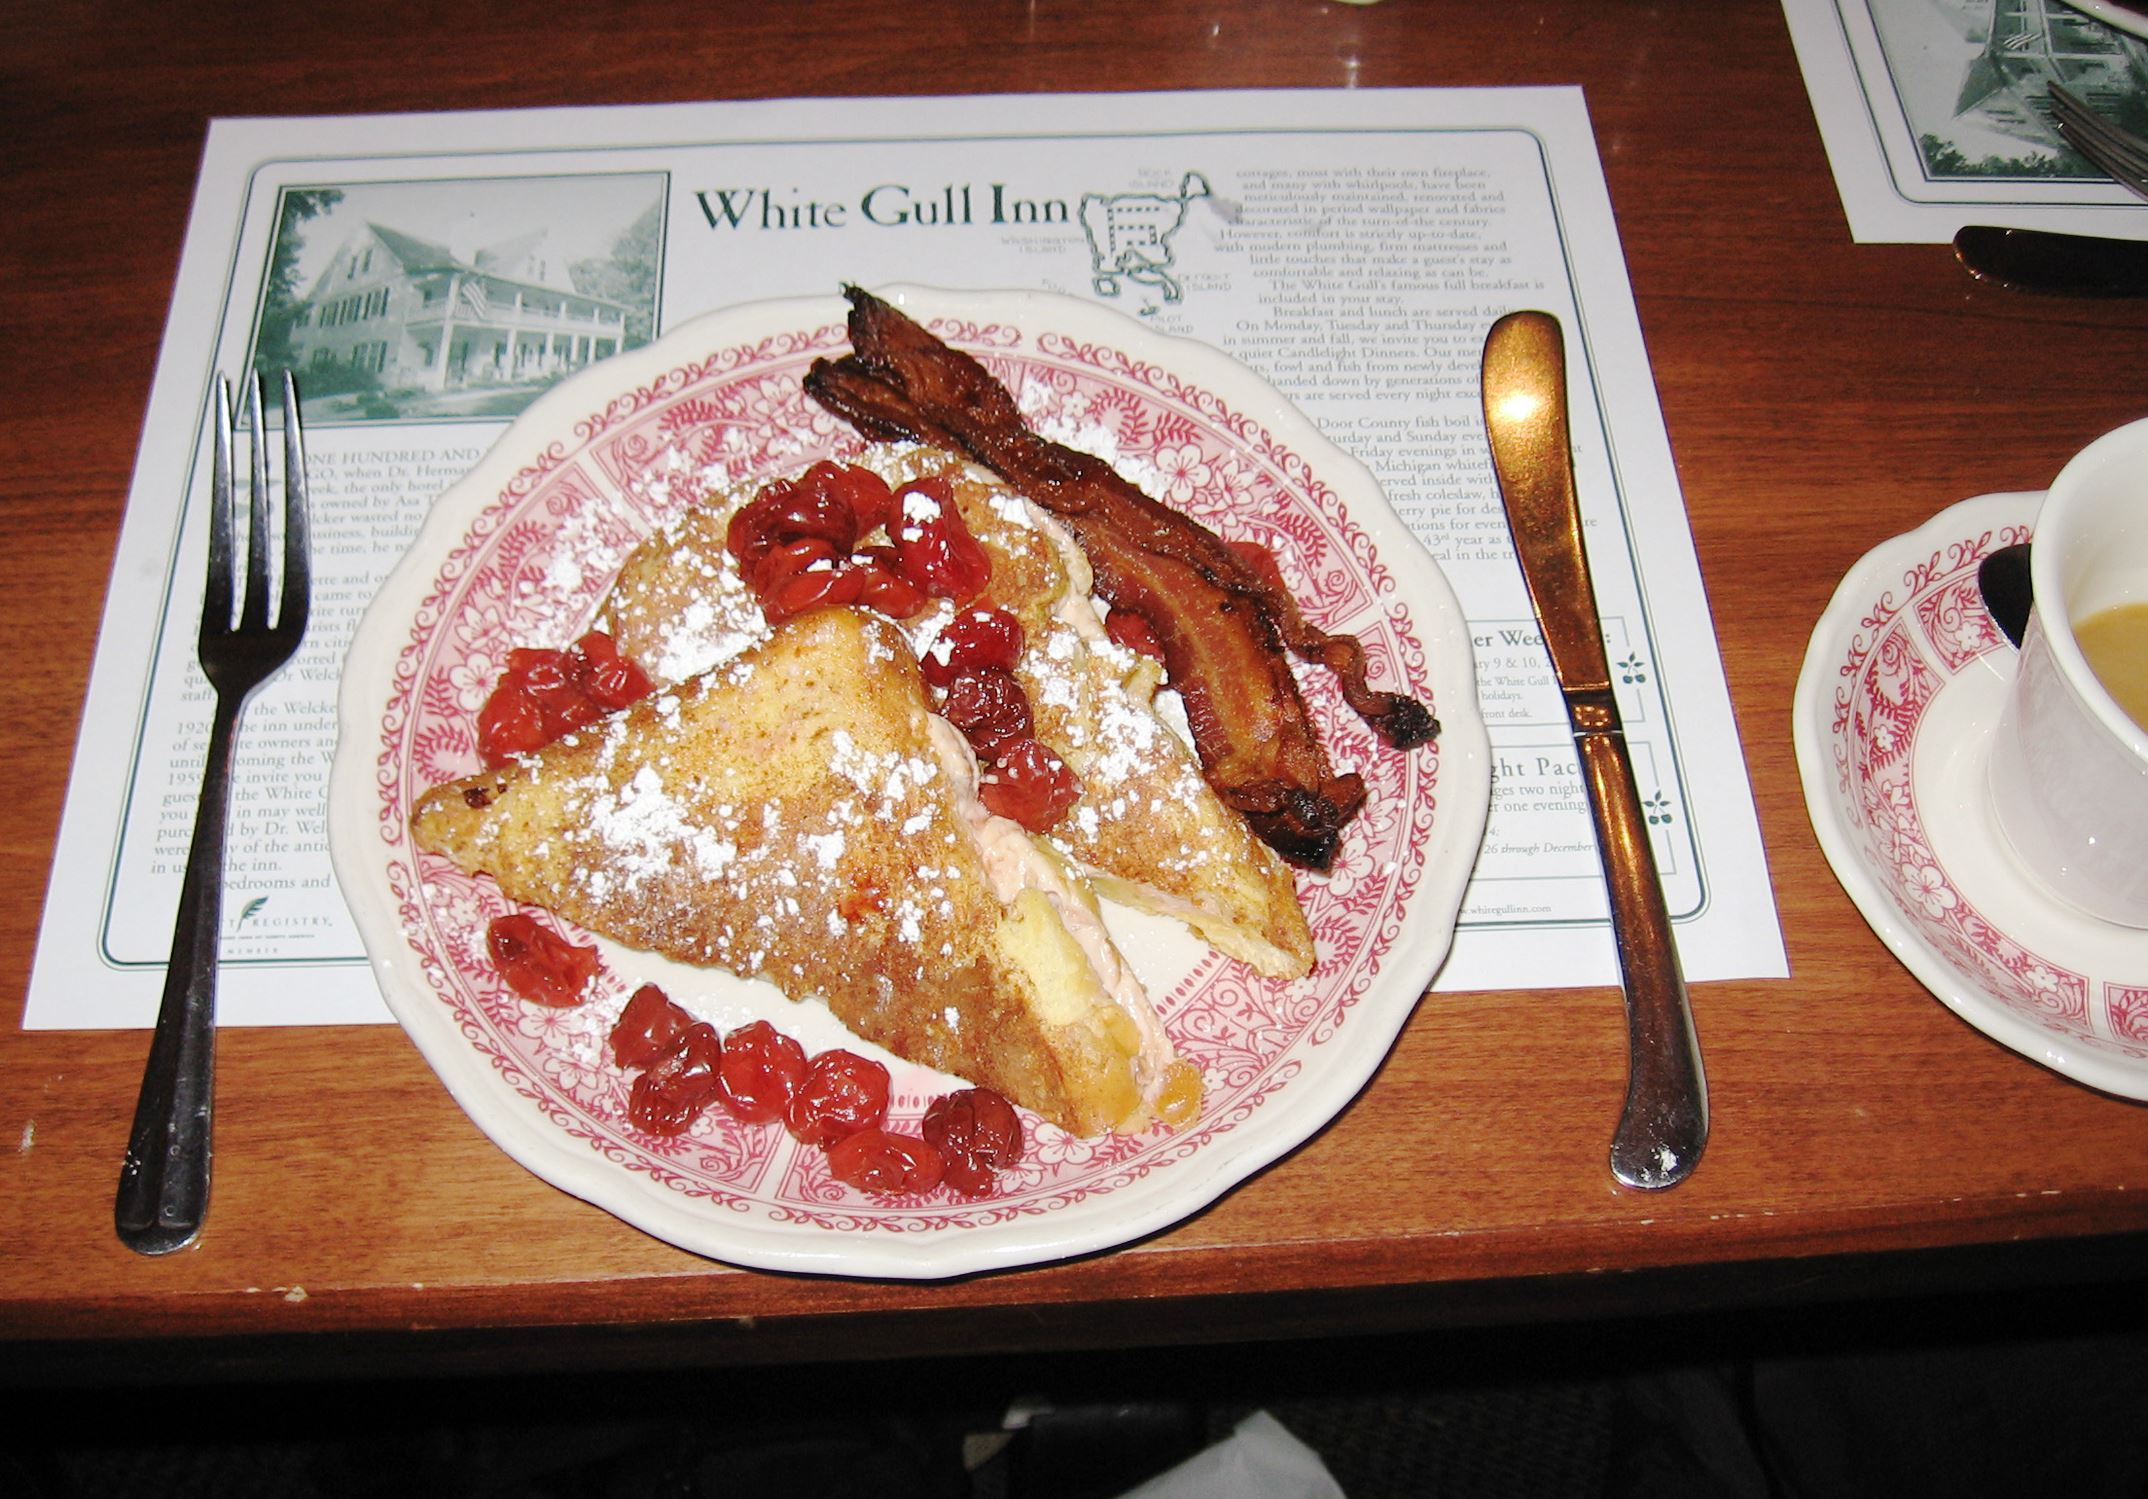 20140729howiscffood-1 Cherry-Stuffed French Toast at White Gull Inn in Fish Creek, Wis.